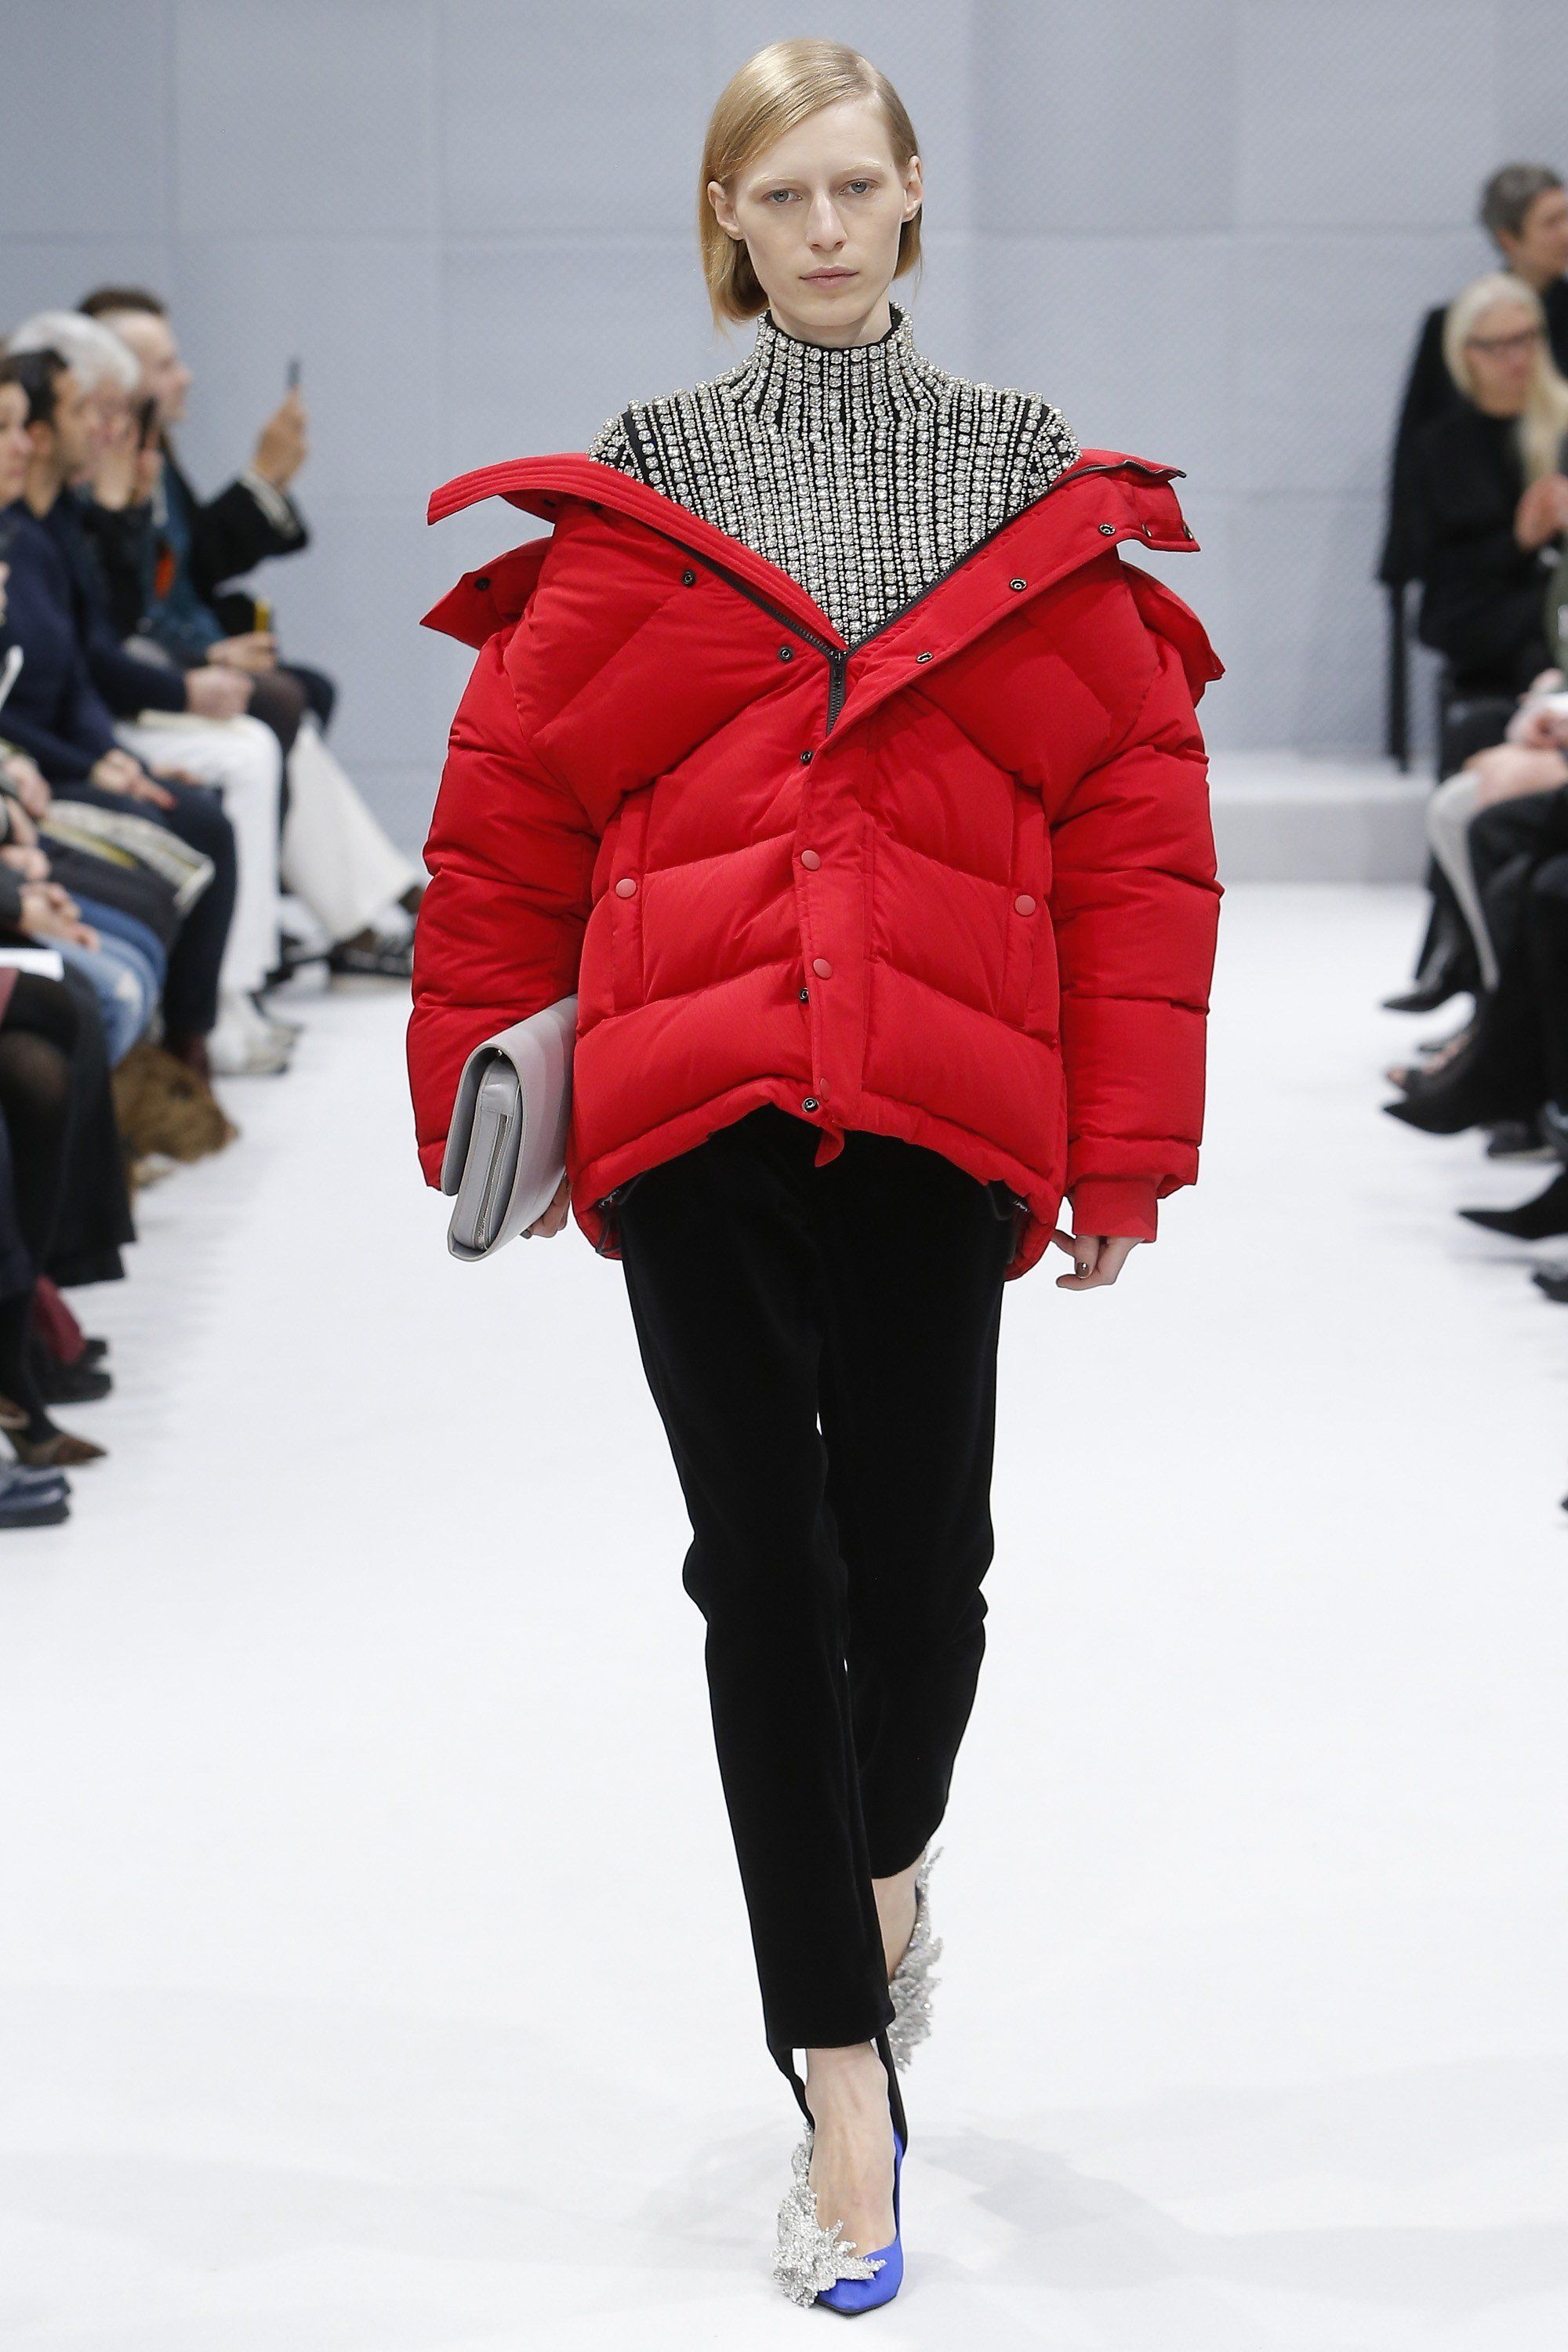 8e0b4282820 Balenciaga Fall 2016 - Demna Gvasalia's red puffer is the coat that ruled  2016. Worn with a bejeweled turtleneck on the Balenciaga runway, ...